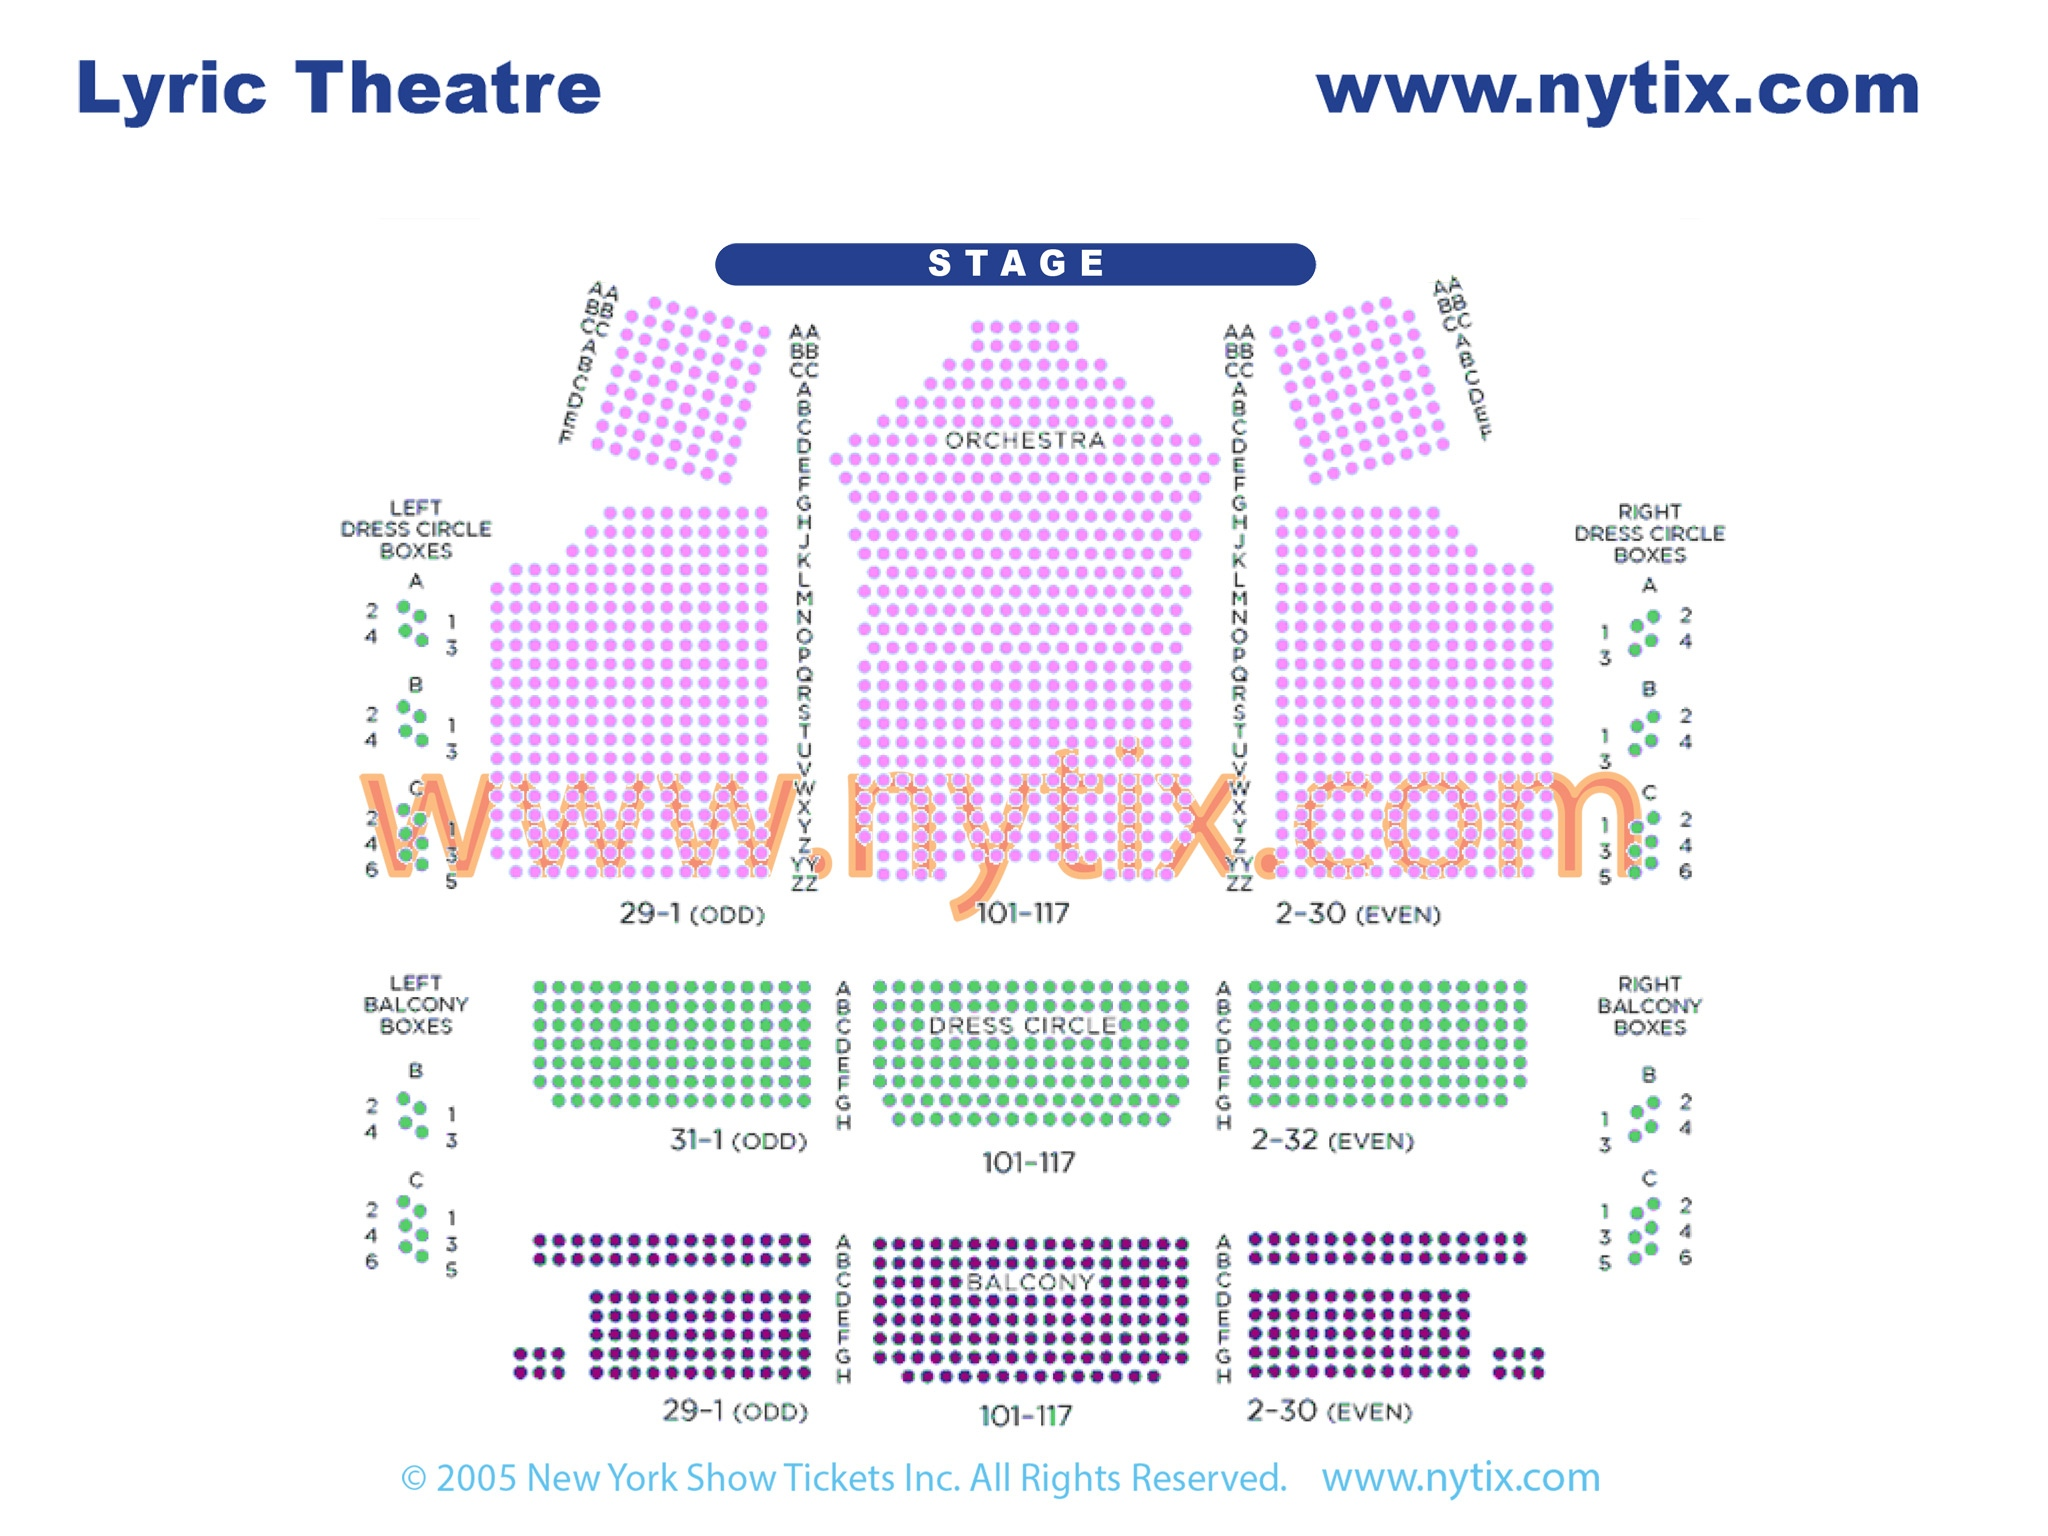 Lyric Theatre Seating Chart